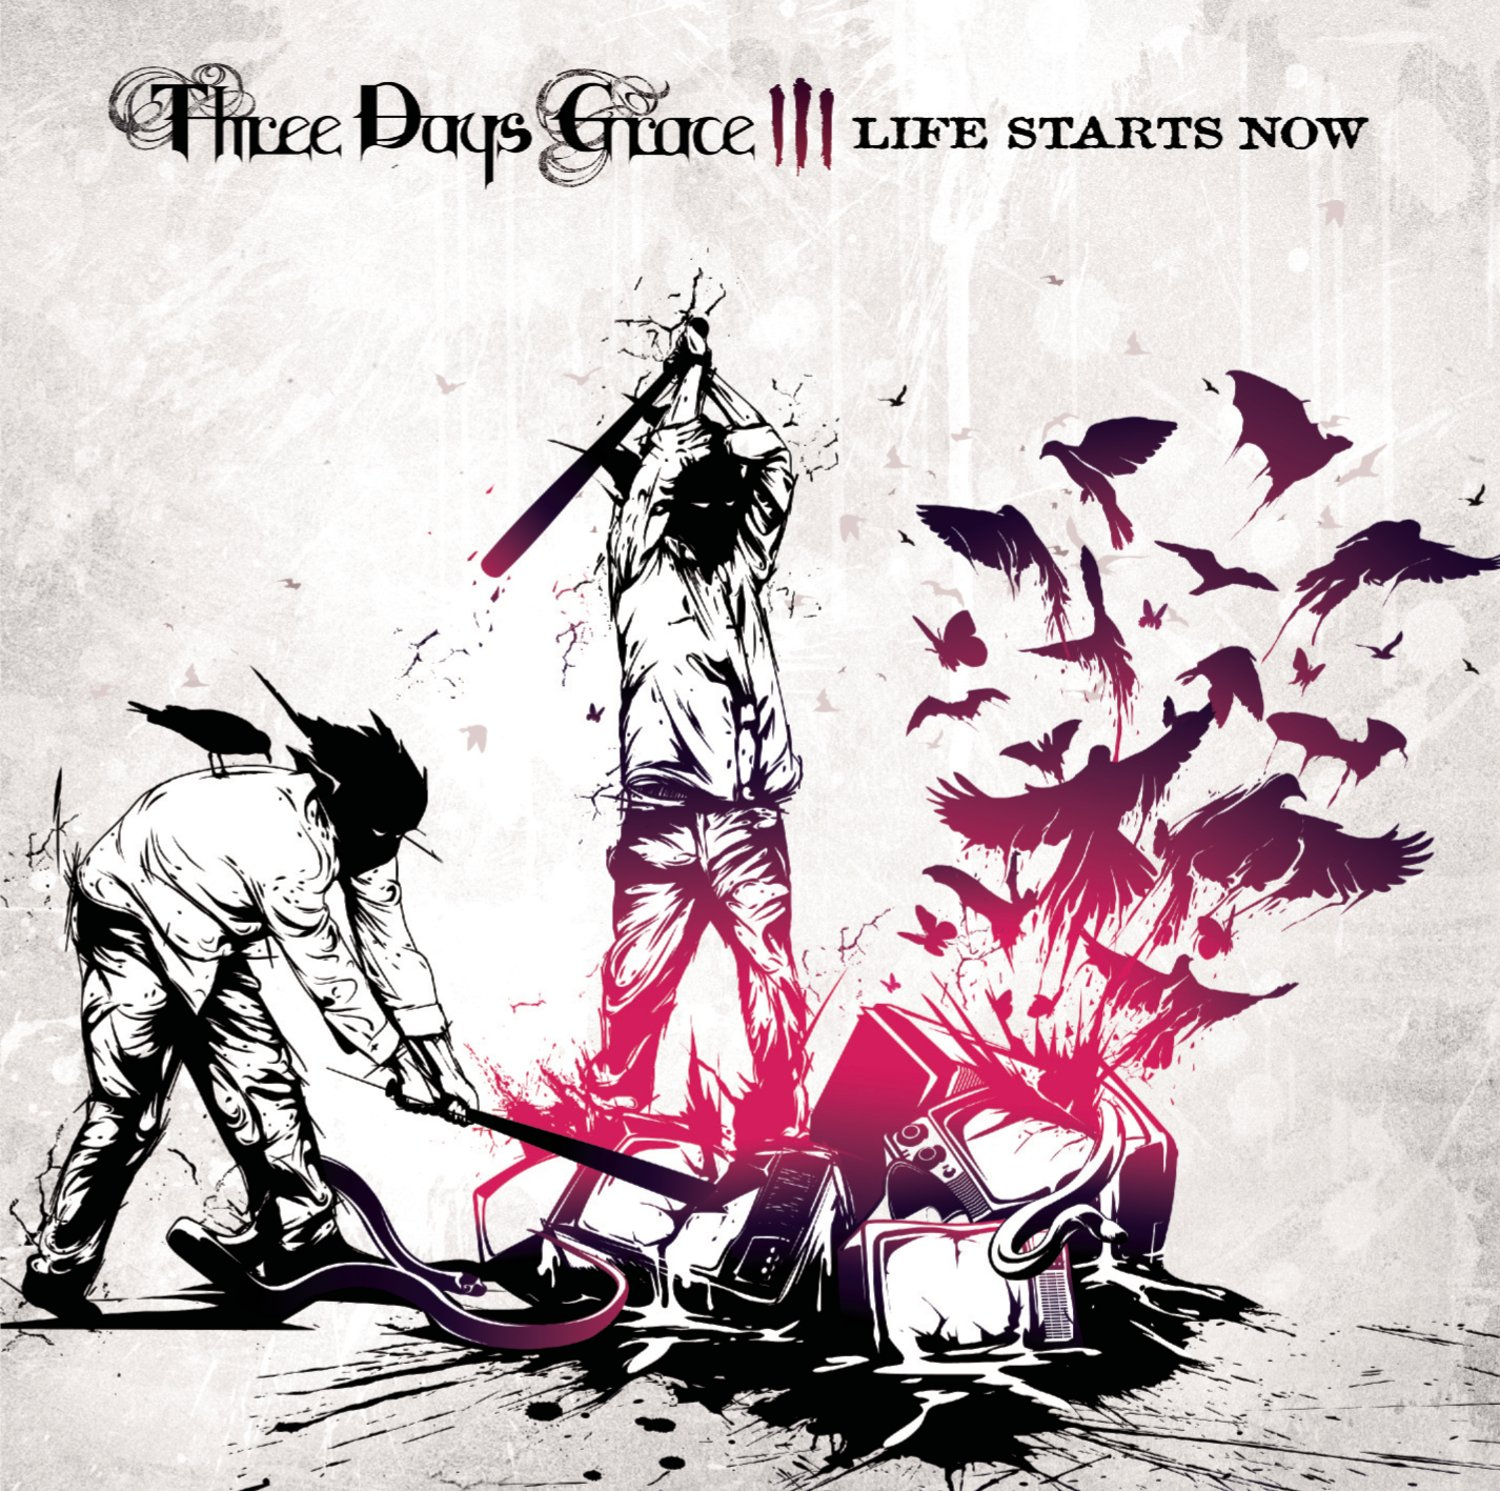 New Sealed 3 Three Days Grace Life Starts Now Audio Cd Disc Album Rock Music 886974625629 Ebay